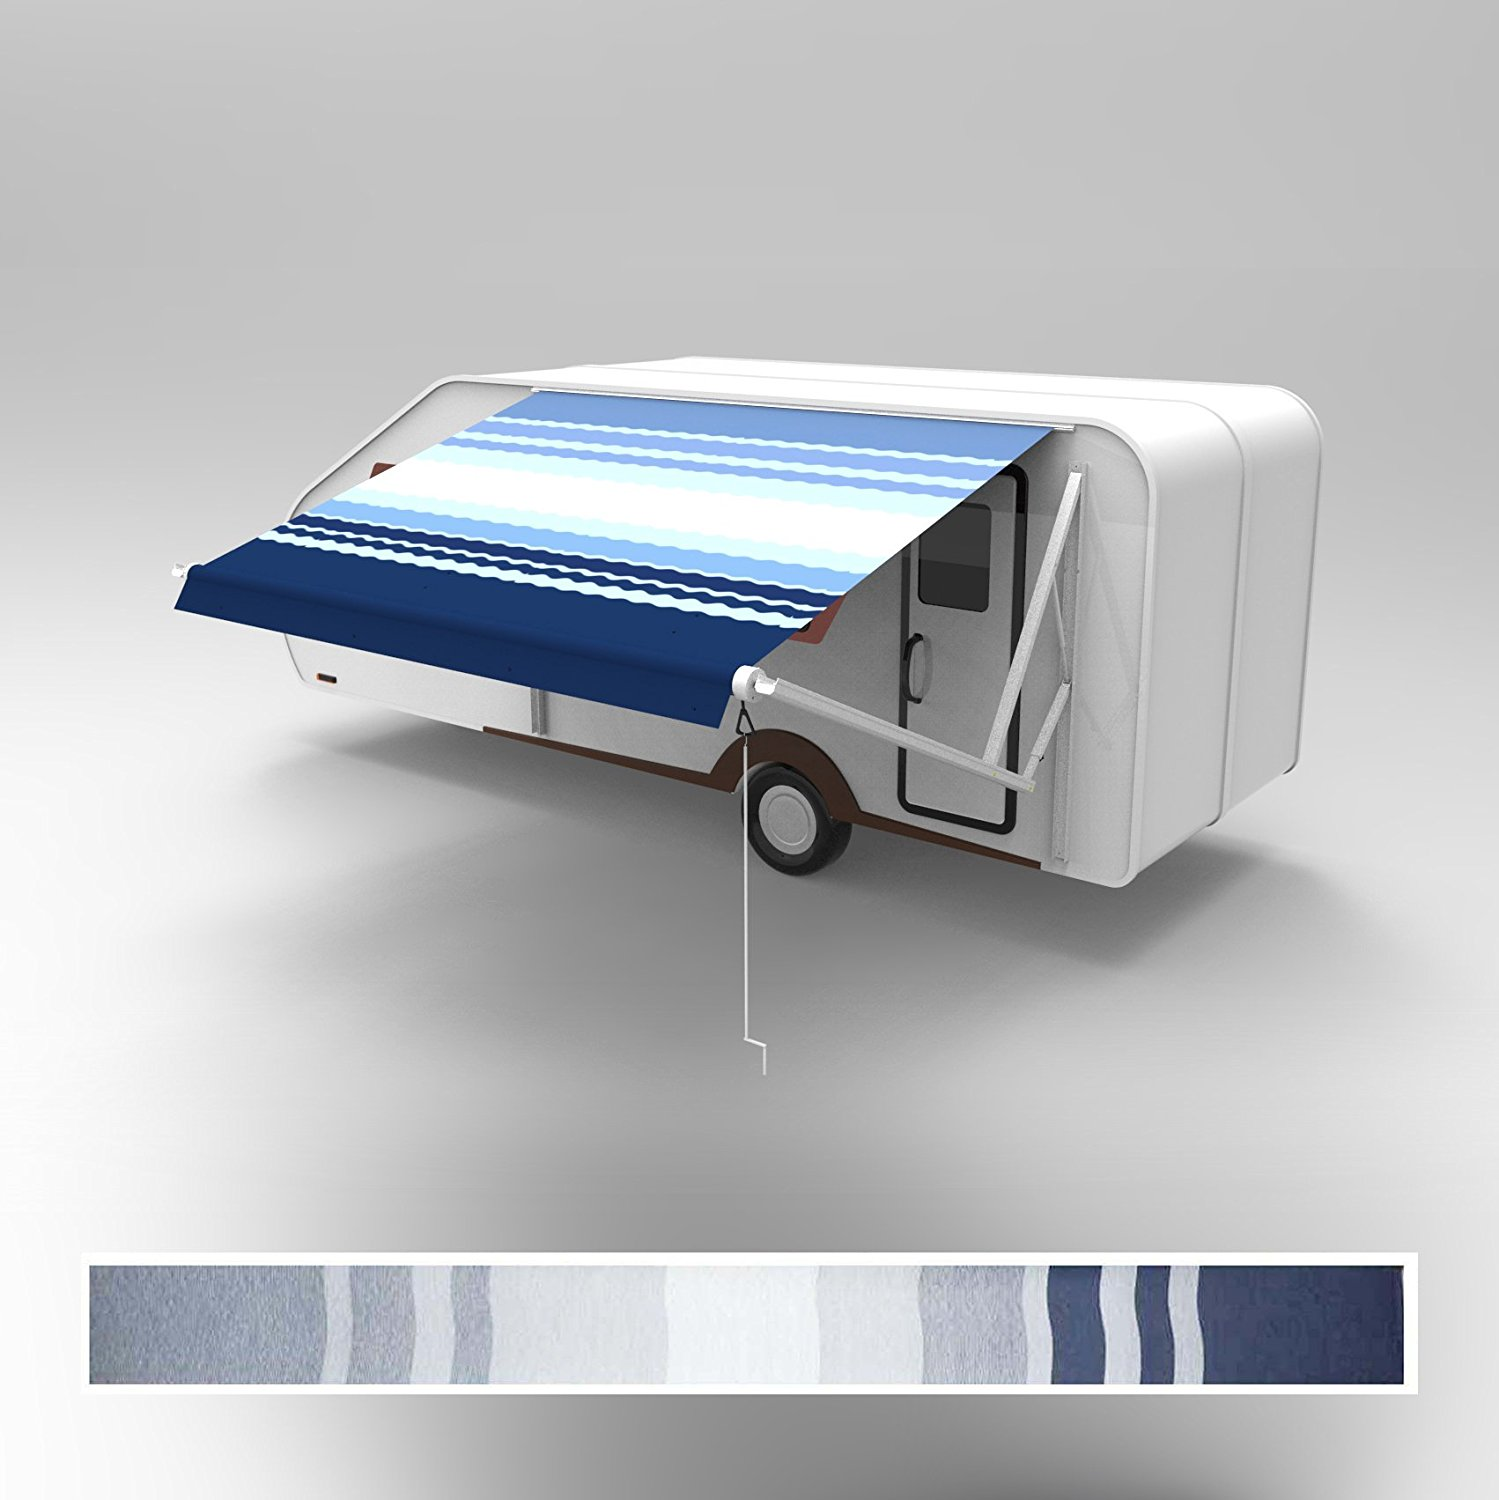 RVAWM15X8BLSTR32 Motorized Retractable RV/Patio Awning 15 x 8 Feet Blue and Whit